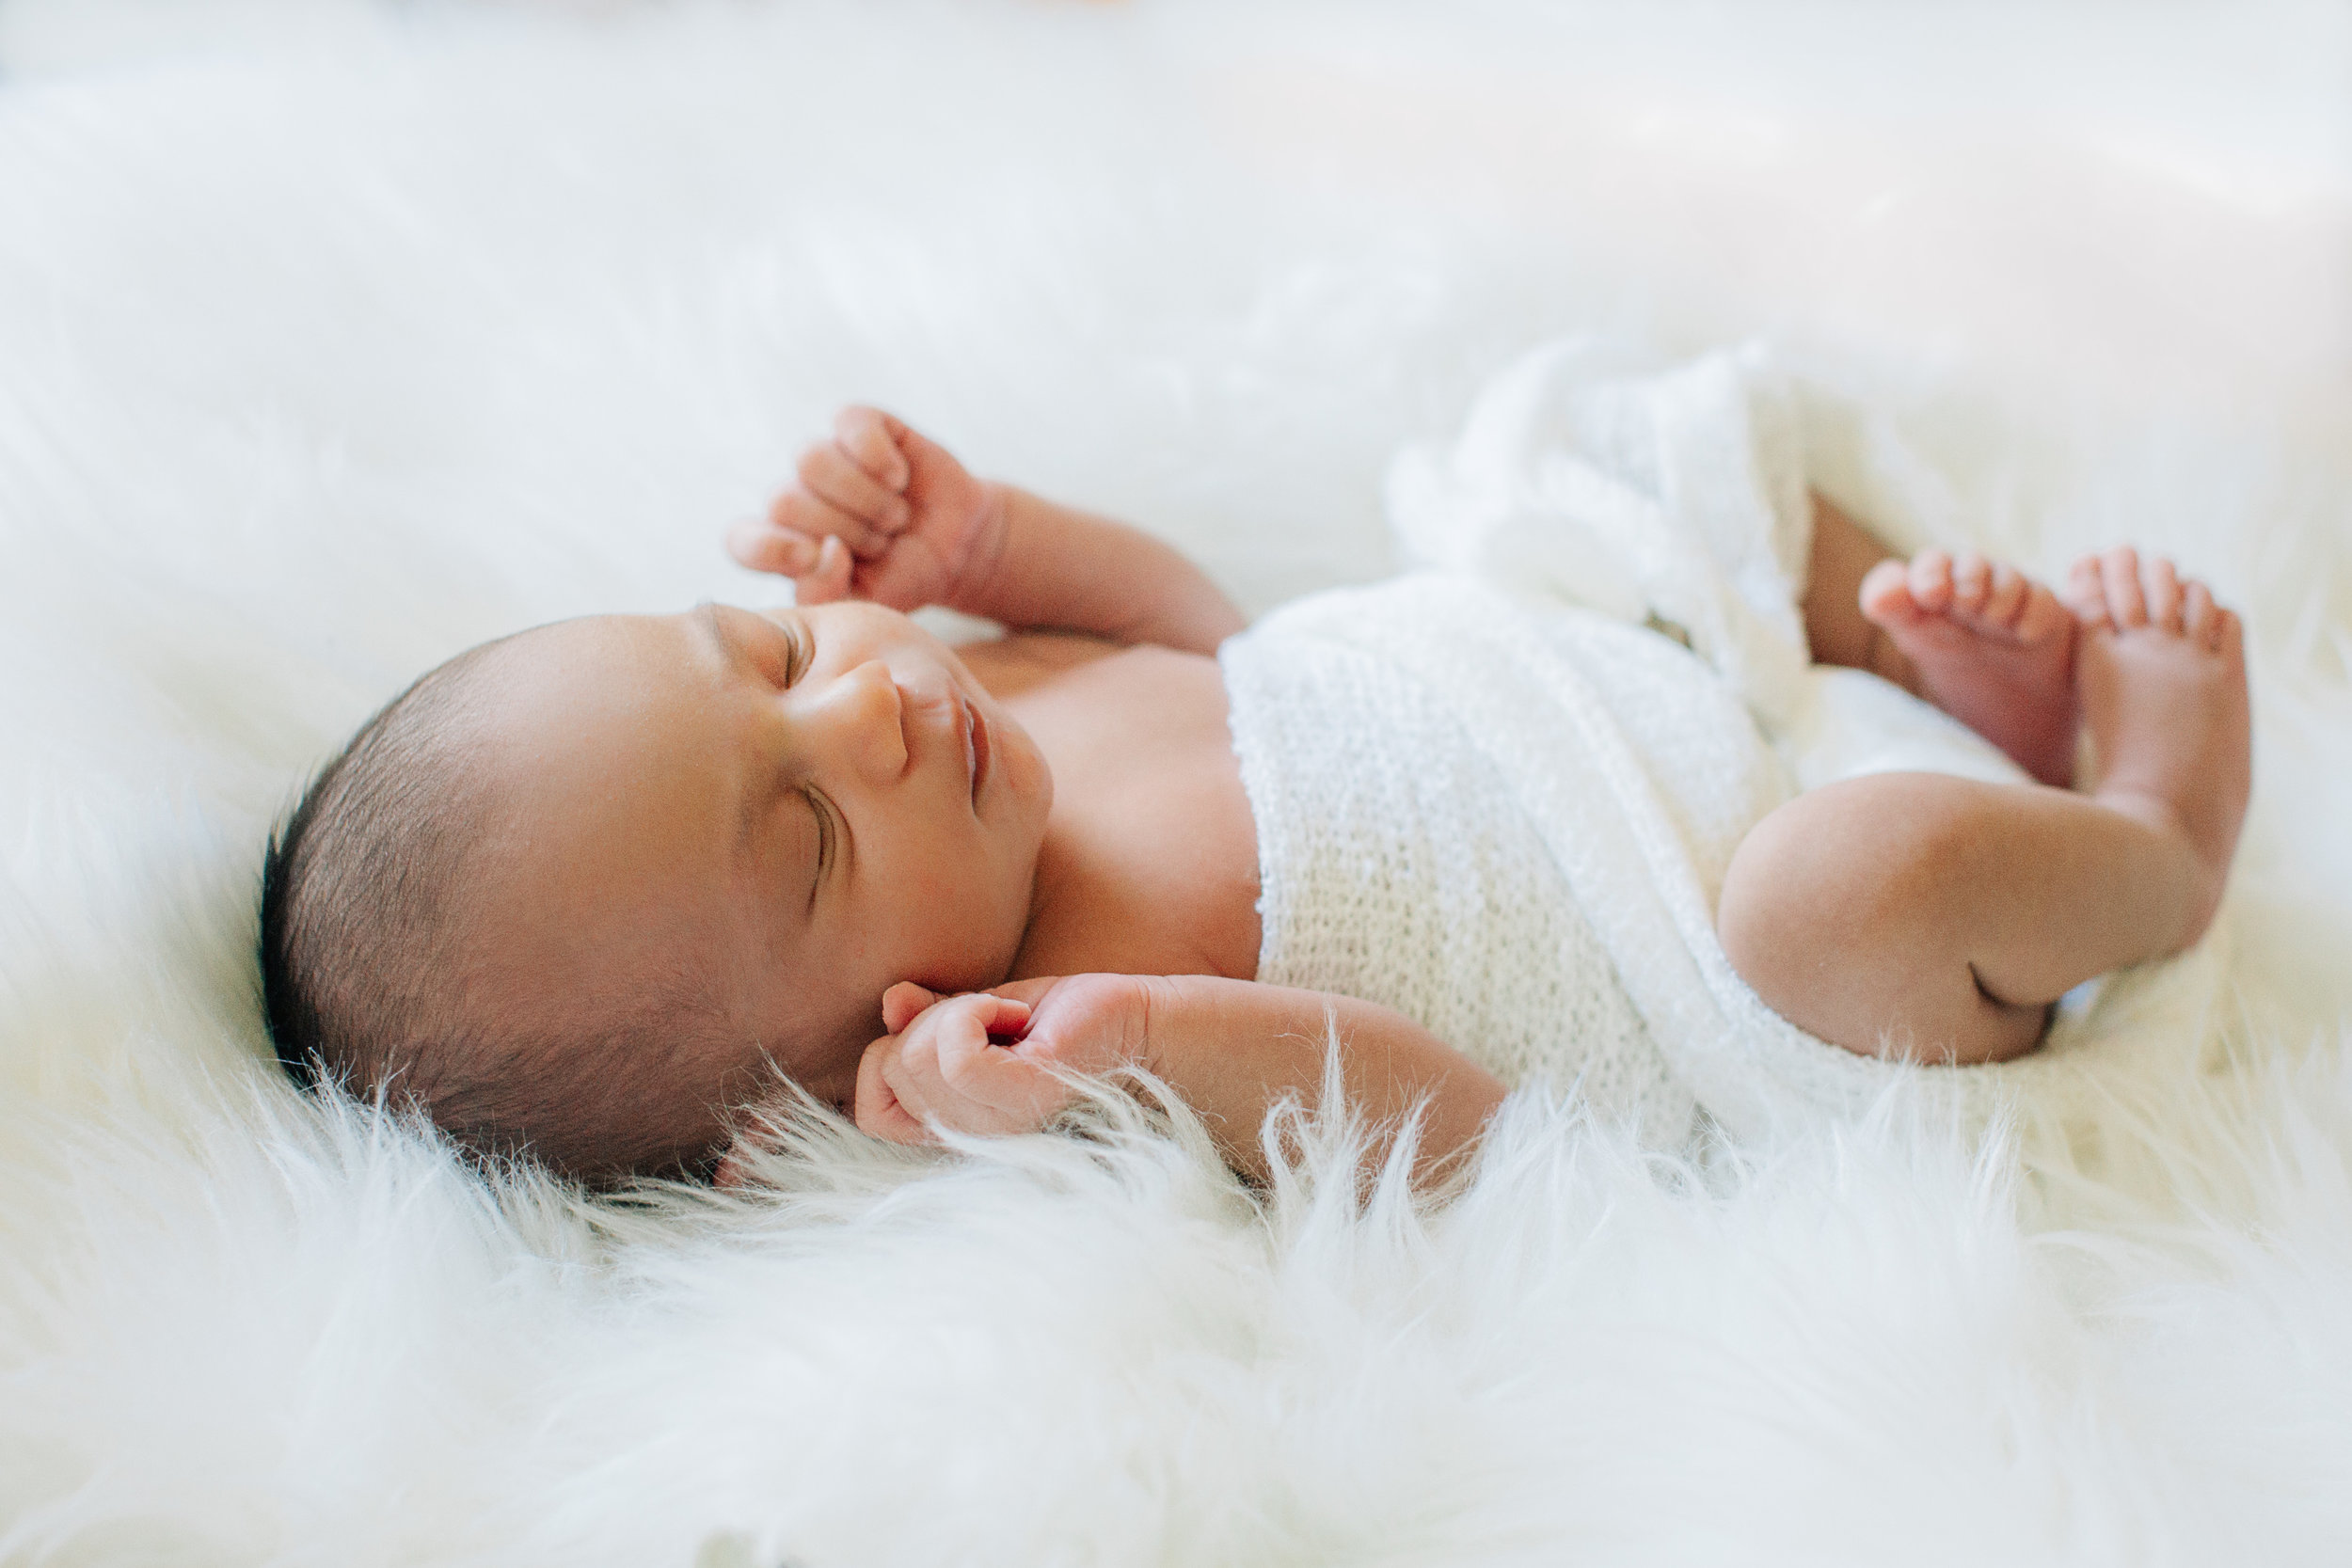 Newborn-St-Paul-MN-001-5DM39569.jpg